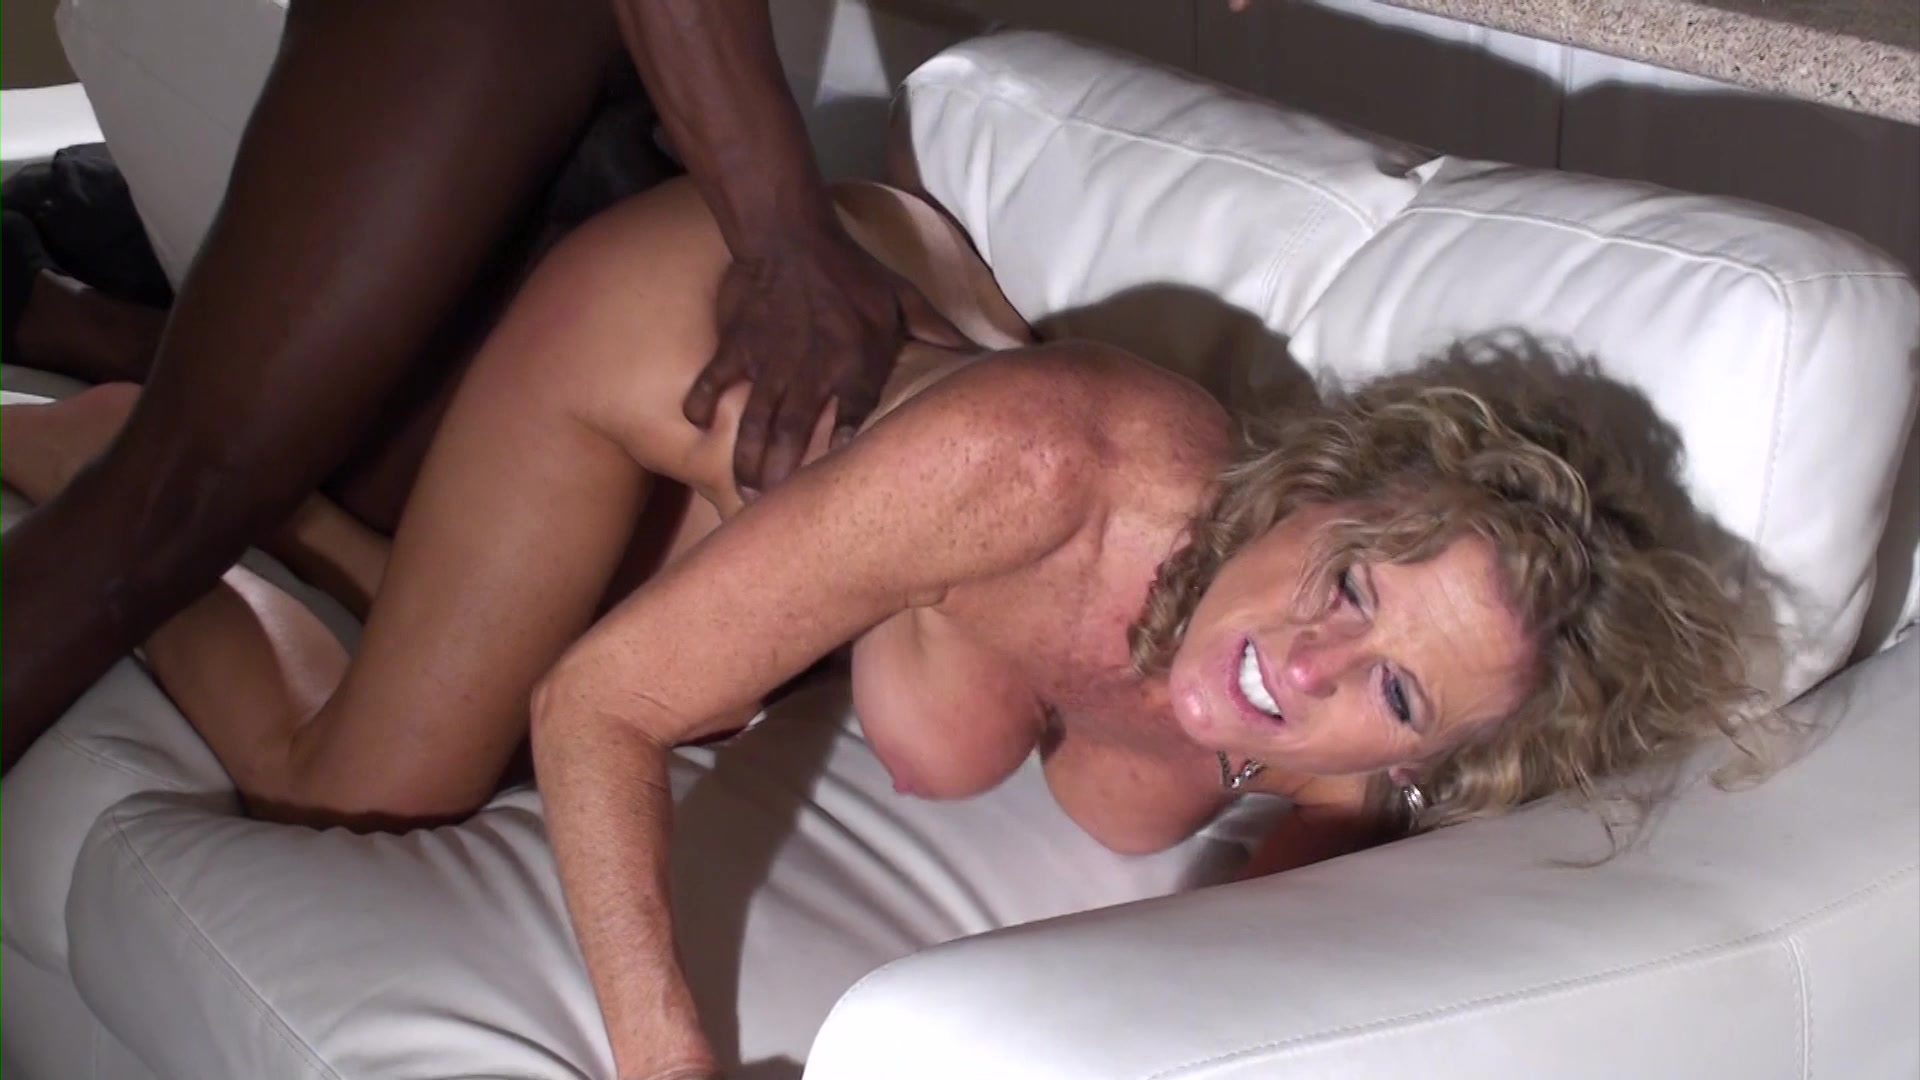 Wife Cheating Rendezvous Streaming Or Download Video On -1063